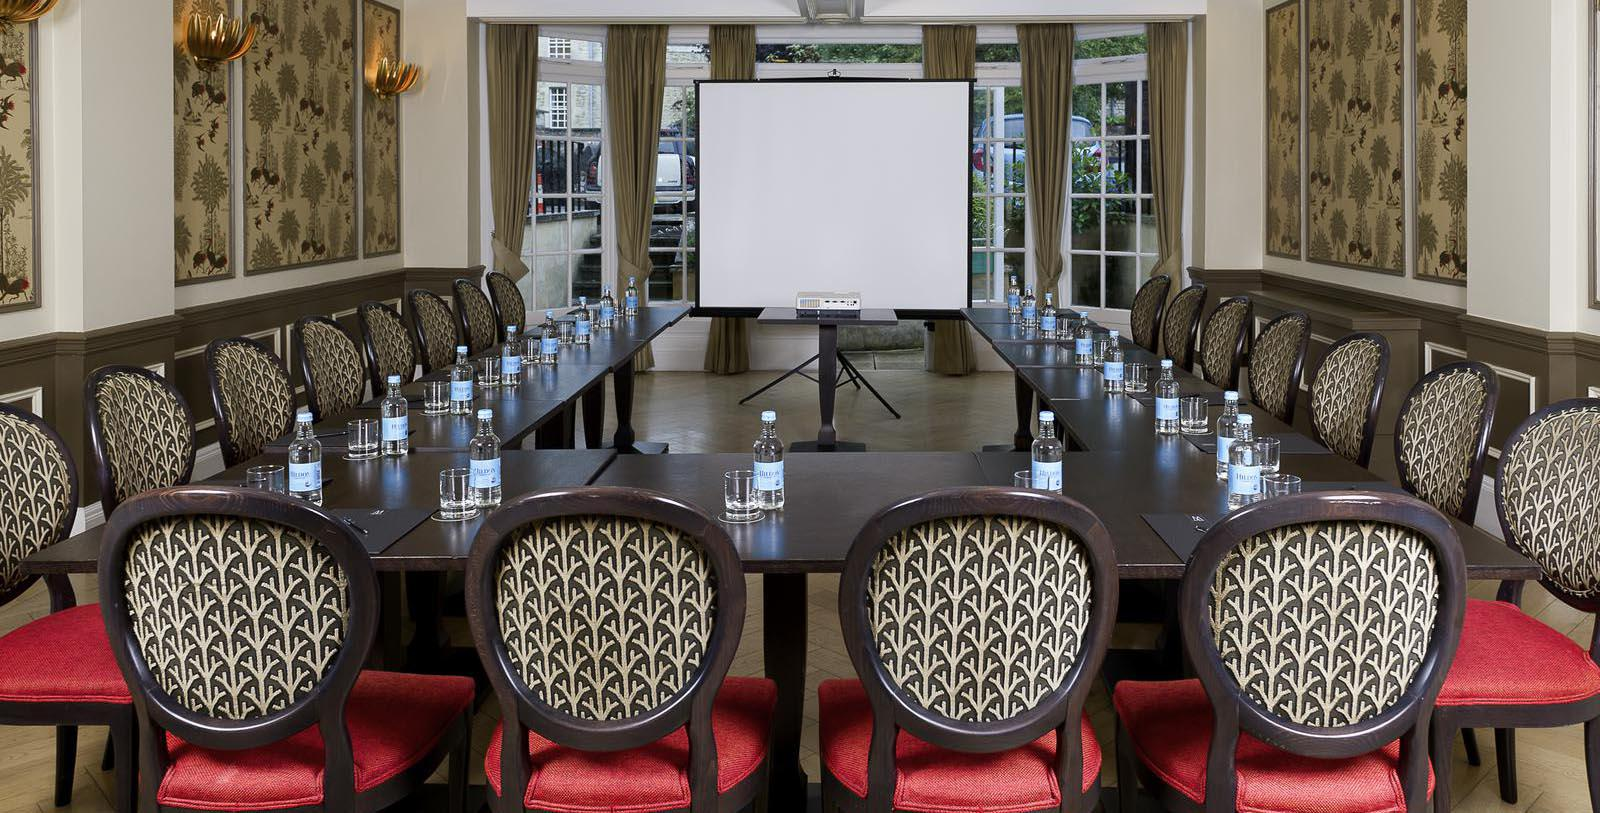 Image of Meeting Space Francis Hotel Bath - MGallery by Sofitel, 1736, Member of Historic Hotels Worldwide, in Bath, England, Experience